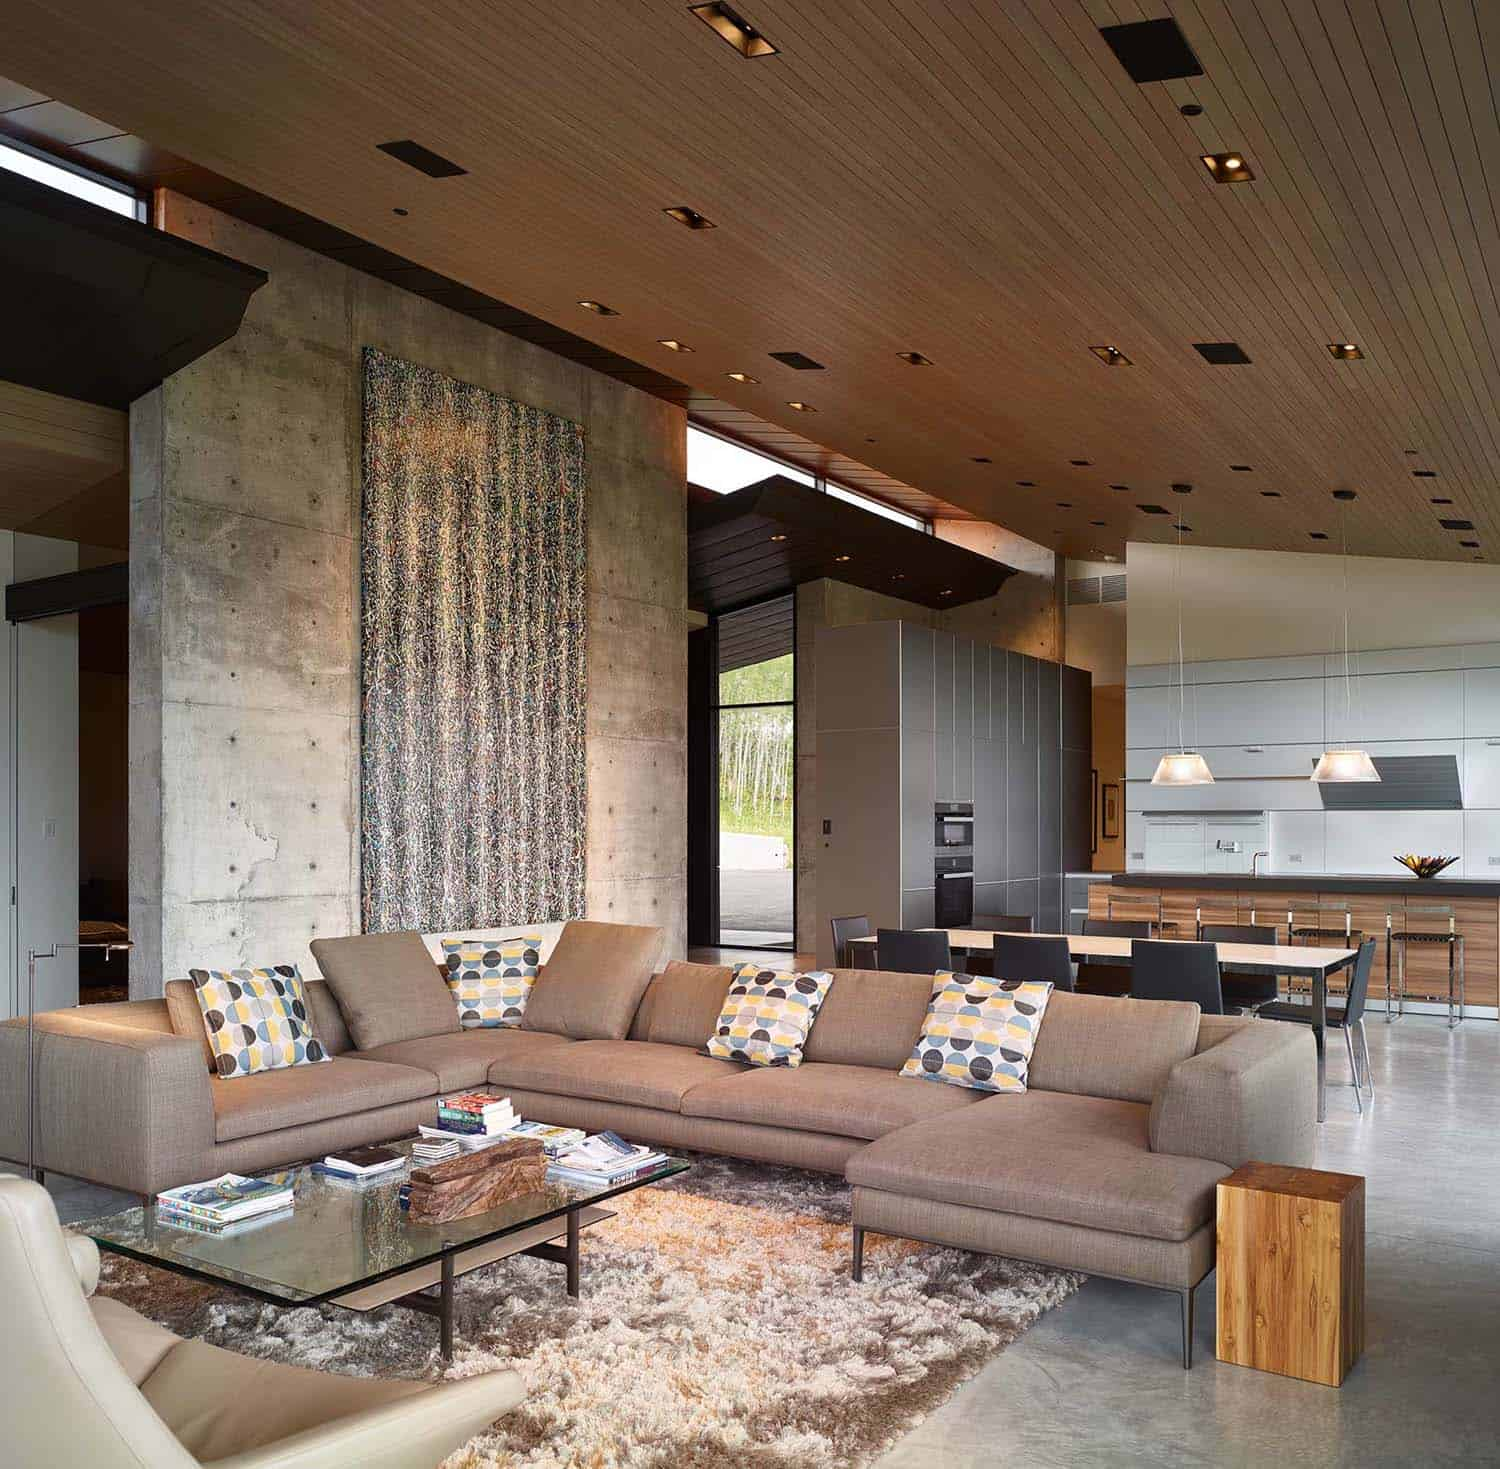 wyoming-residence-abramson-teiger-architects-03-1-kindesign